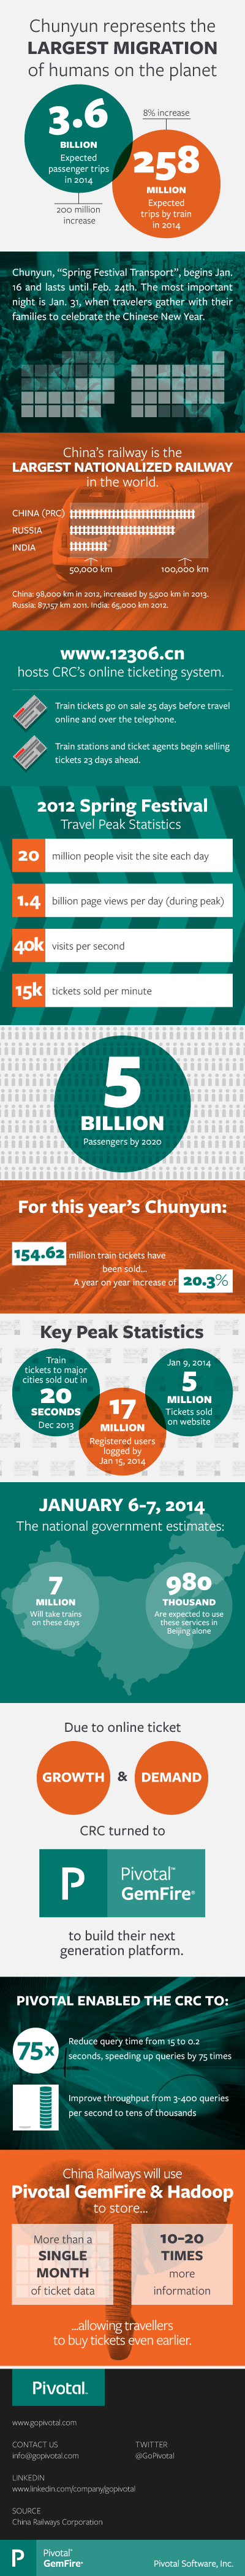 China Railway case study.